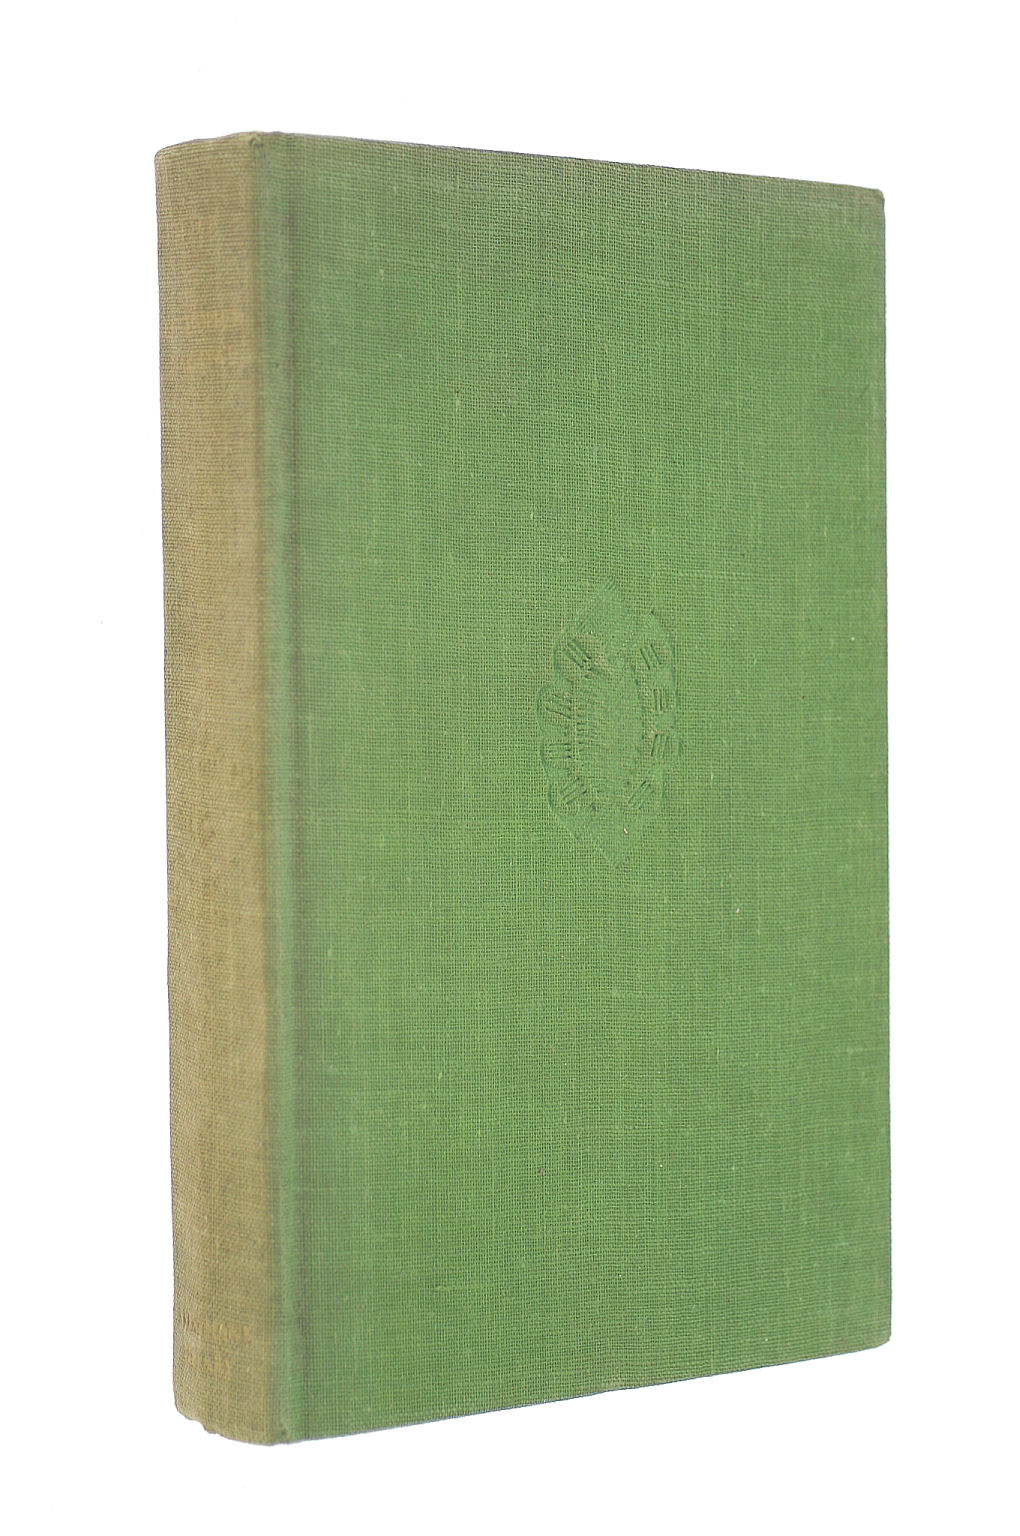 Image for Plays, Everyman's Library No. 383 Edited By Ernest Rhys, With An Introduction By Edward Thomas